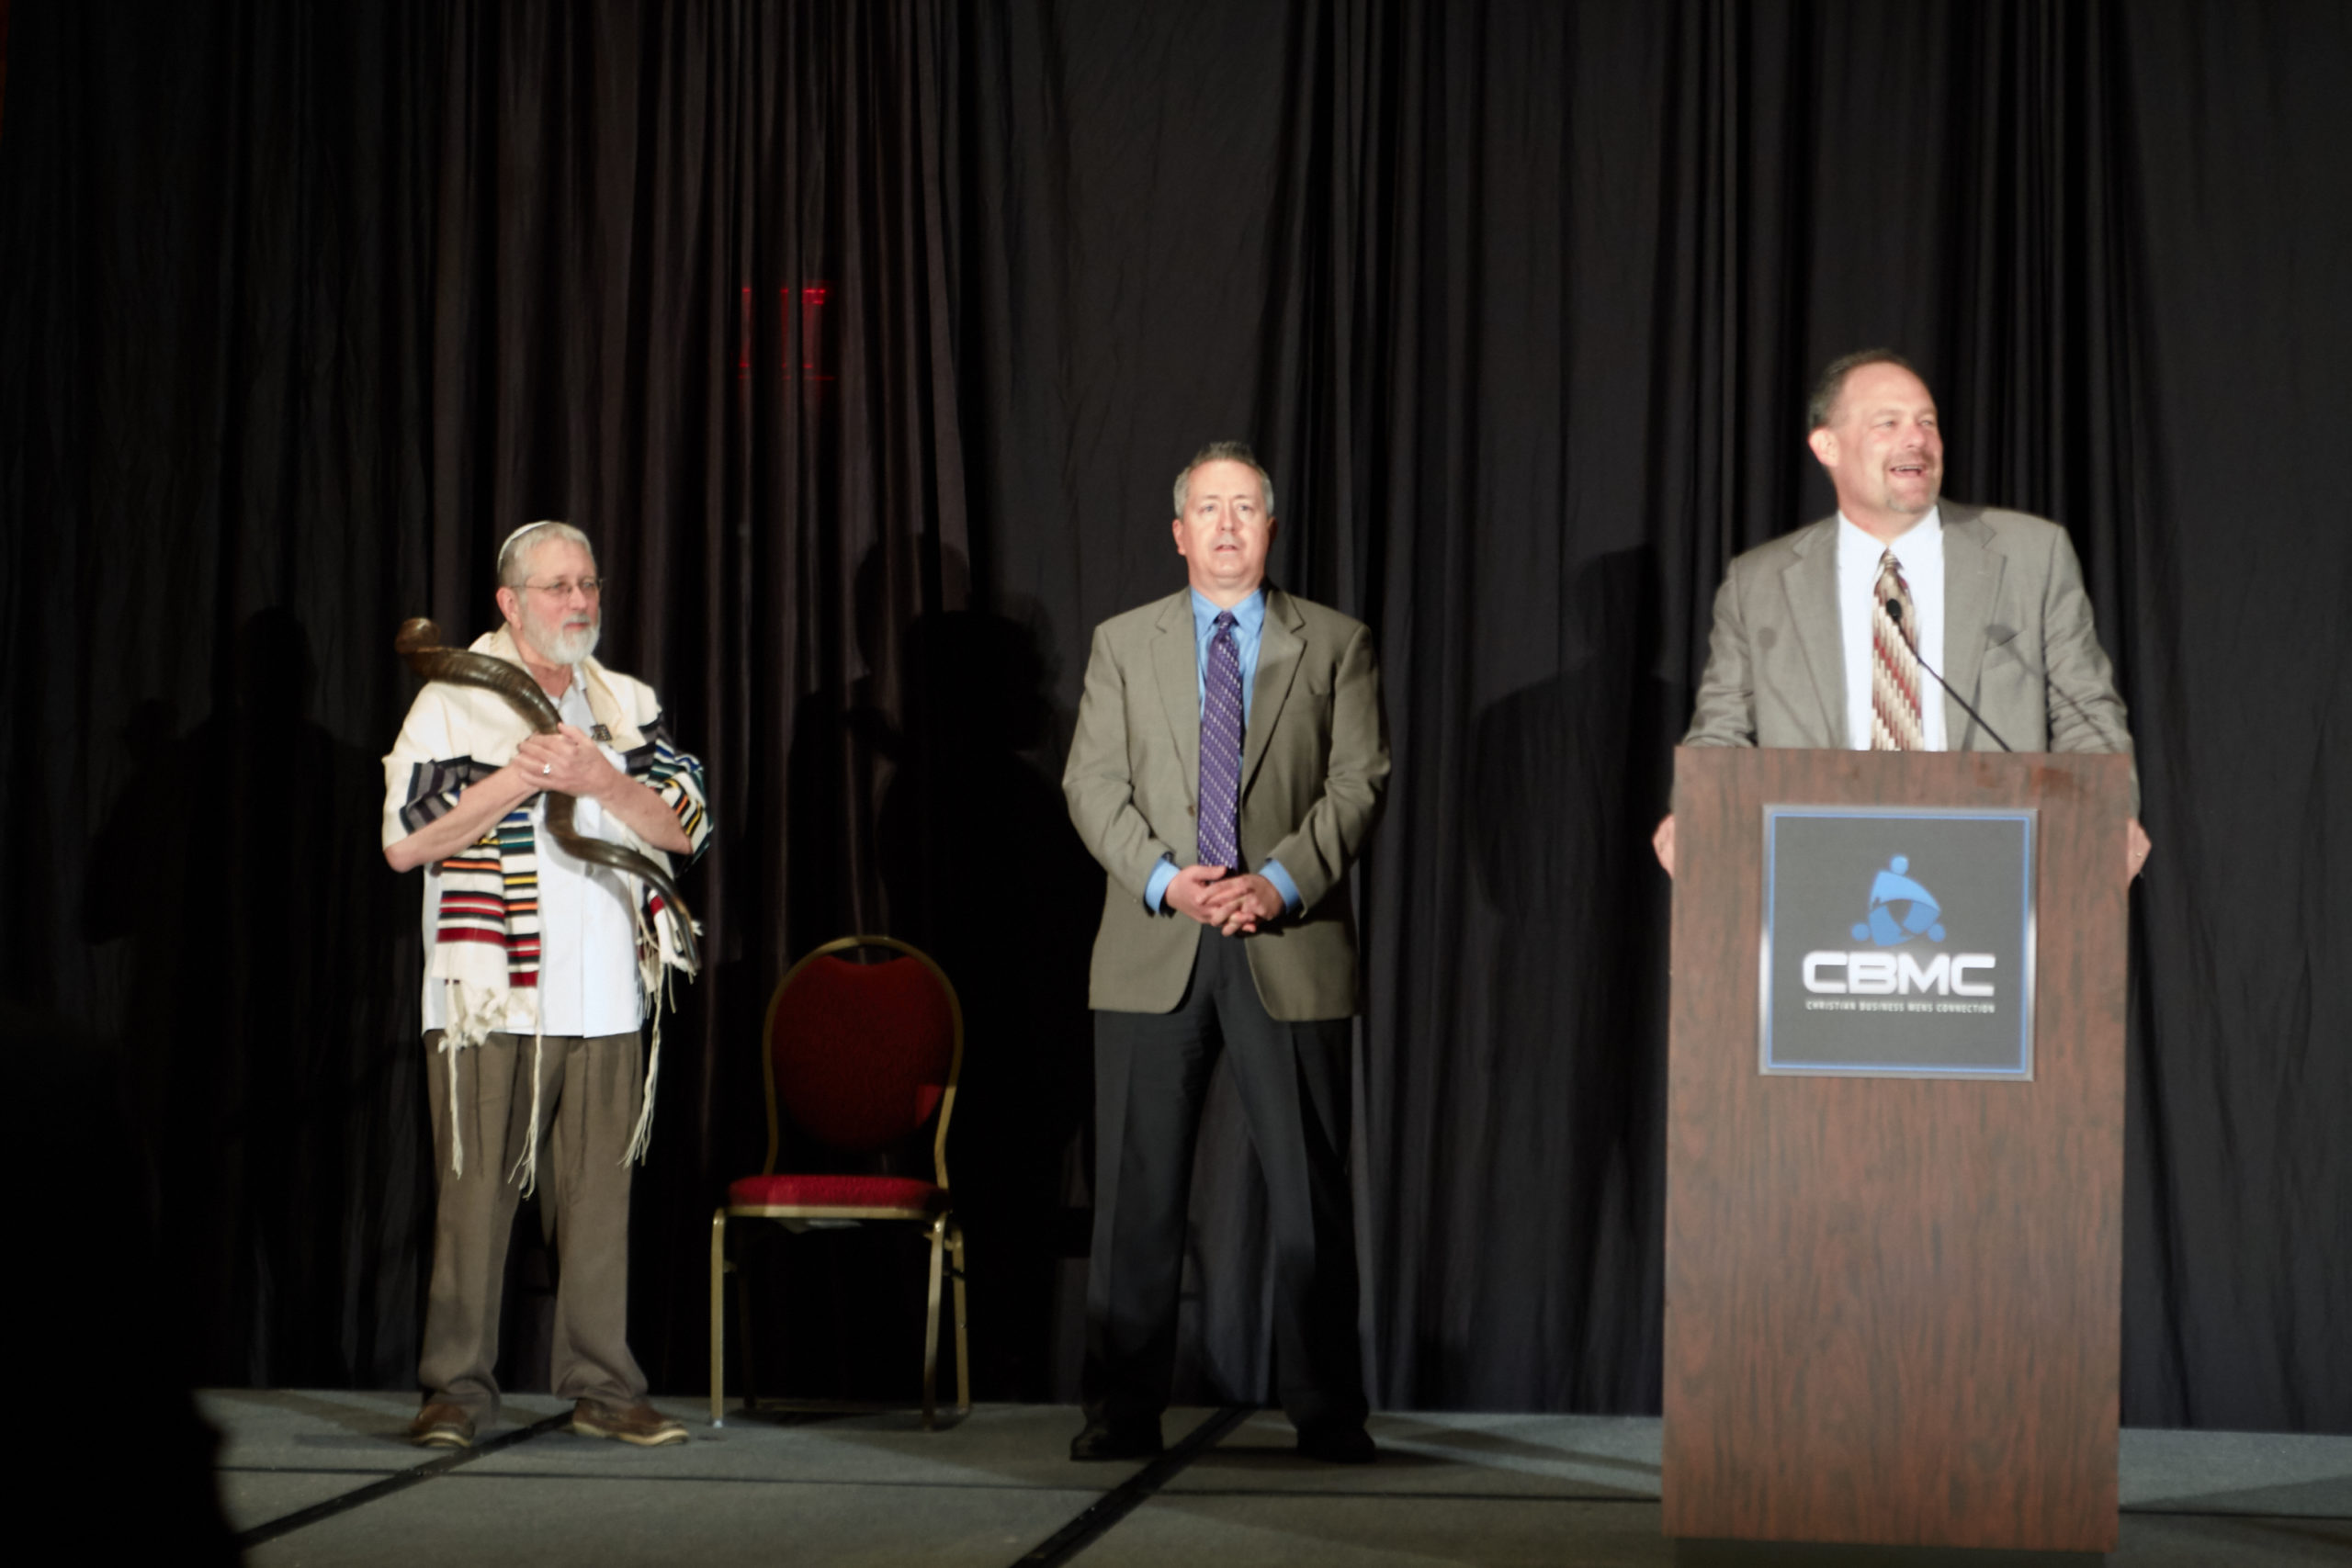 Rabbi with shofar, two other men, one behind a podium  Omaha Leadership Prayer Breakfast